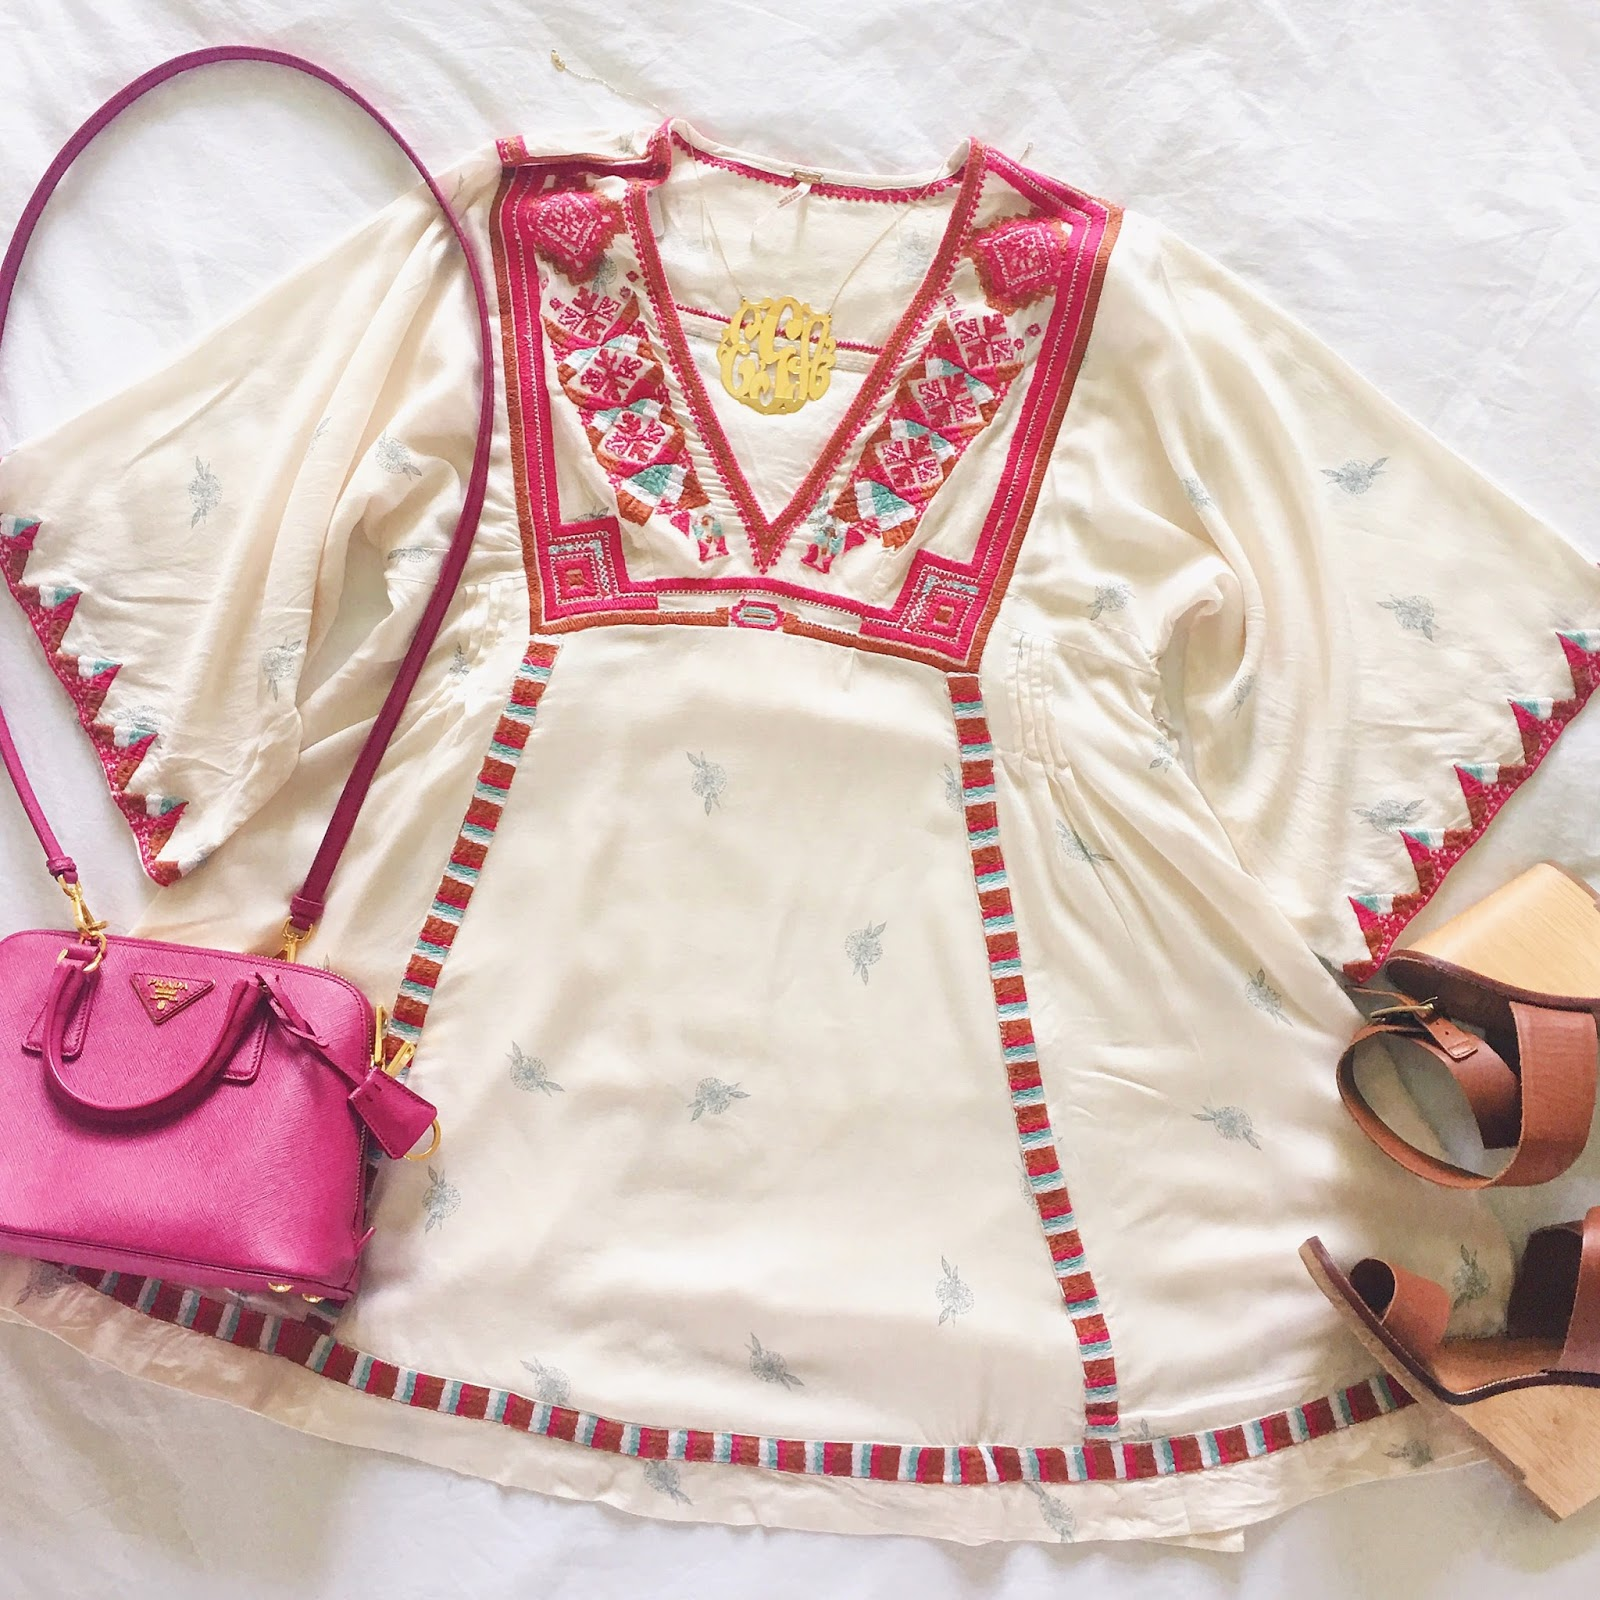 pink prada trapezoid bag, oversized gold monogram, free people tulum embroidered dress, nordstrom N sale anniversary sale 2016, shop the Nordstrom anniversary sale 2016